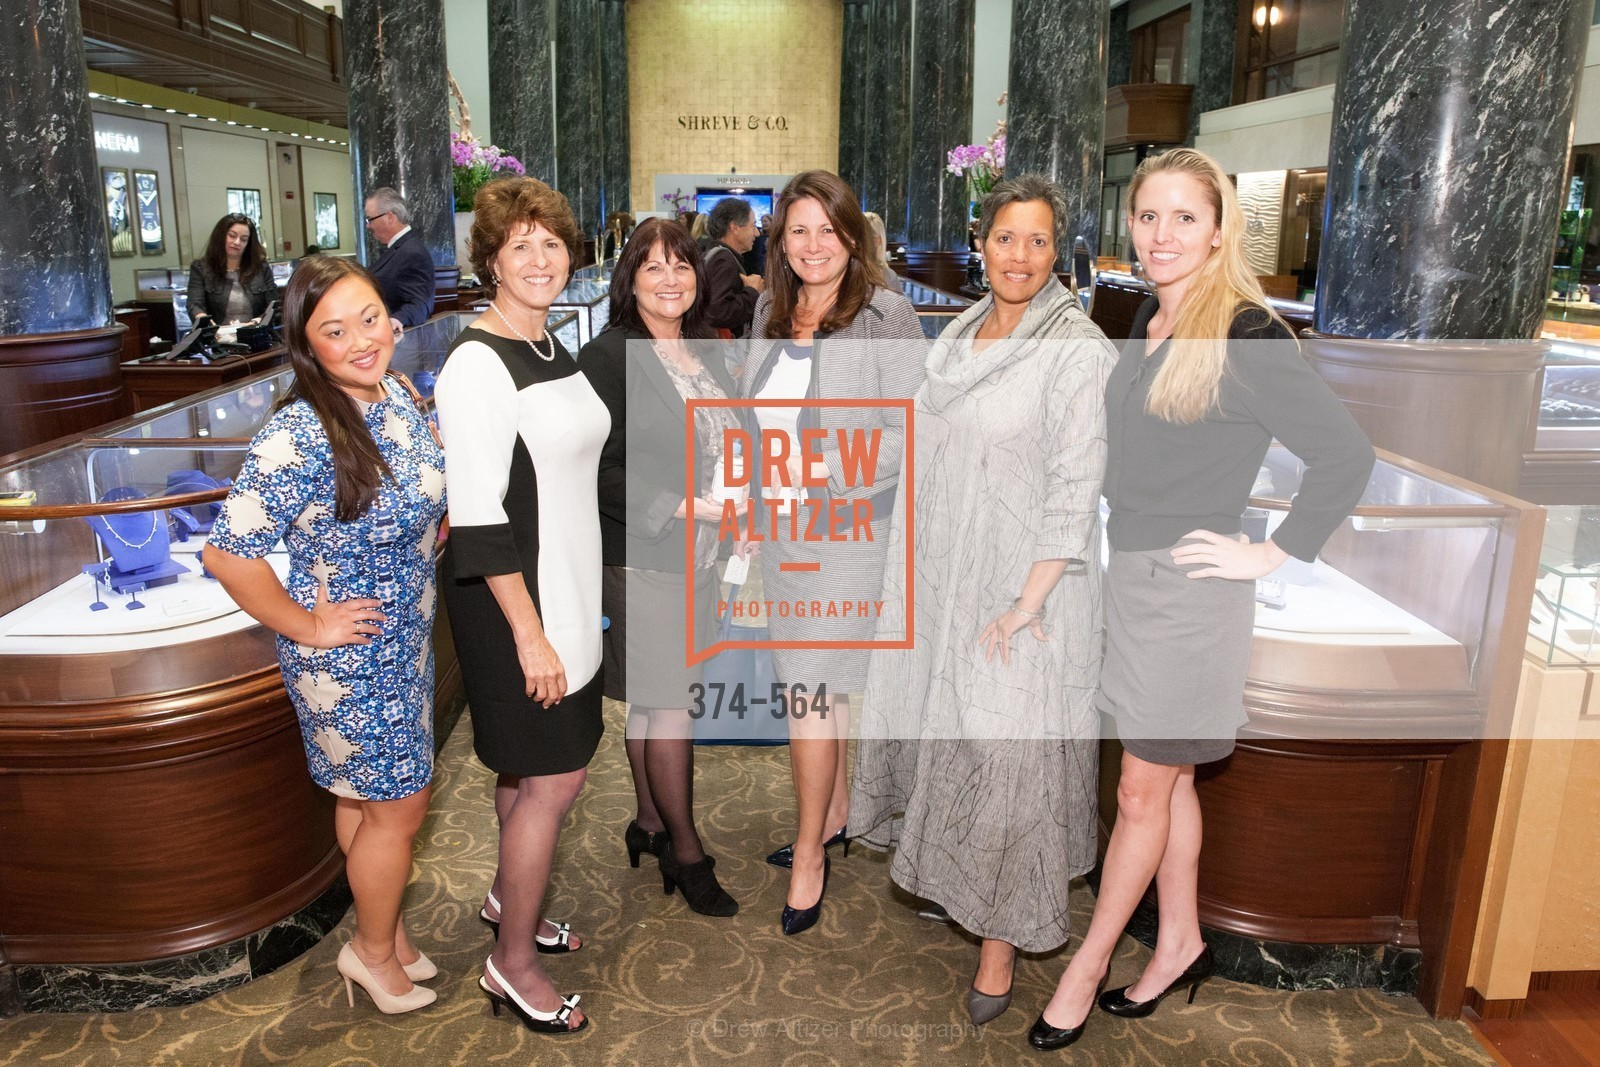 Wendy Cruz, Juanita Kizor, Laura Mulder, Carolyn Williams-Goldman, Jennifer Gibbs, Montine Felso, SHREVE & CO. Hosts AMERICAN CANCER SOCIETY BENEFIT, US, September 10th, 2014,Drew Altizer, Drew Altizer Photography, full-service agency, private events, San Francisco photographer, photographer california